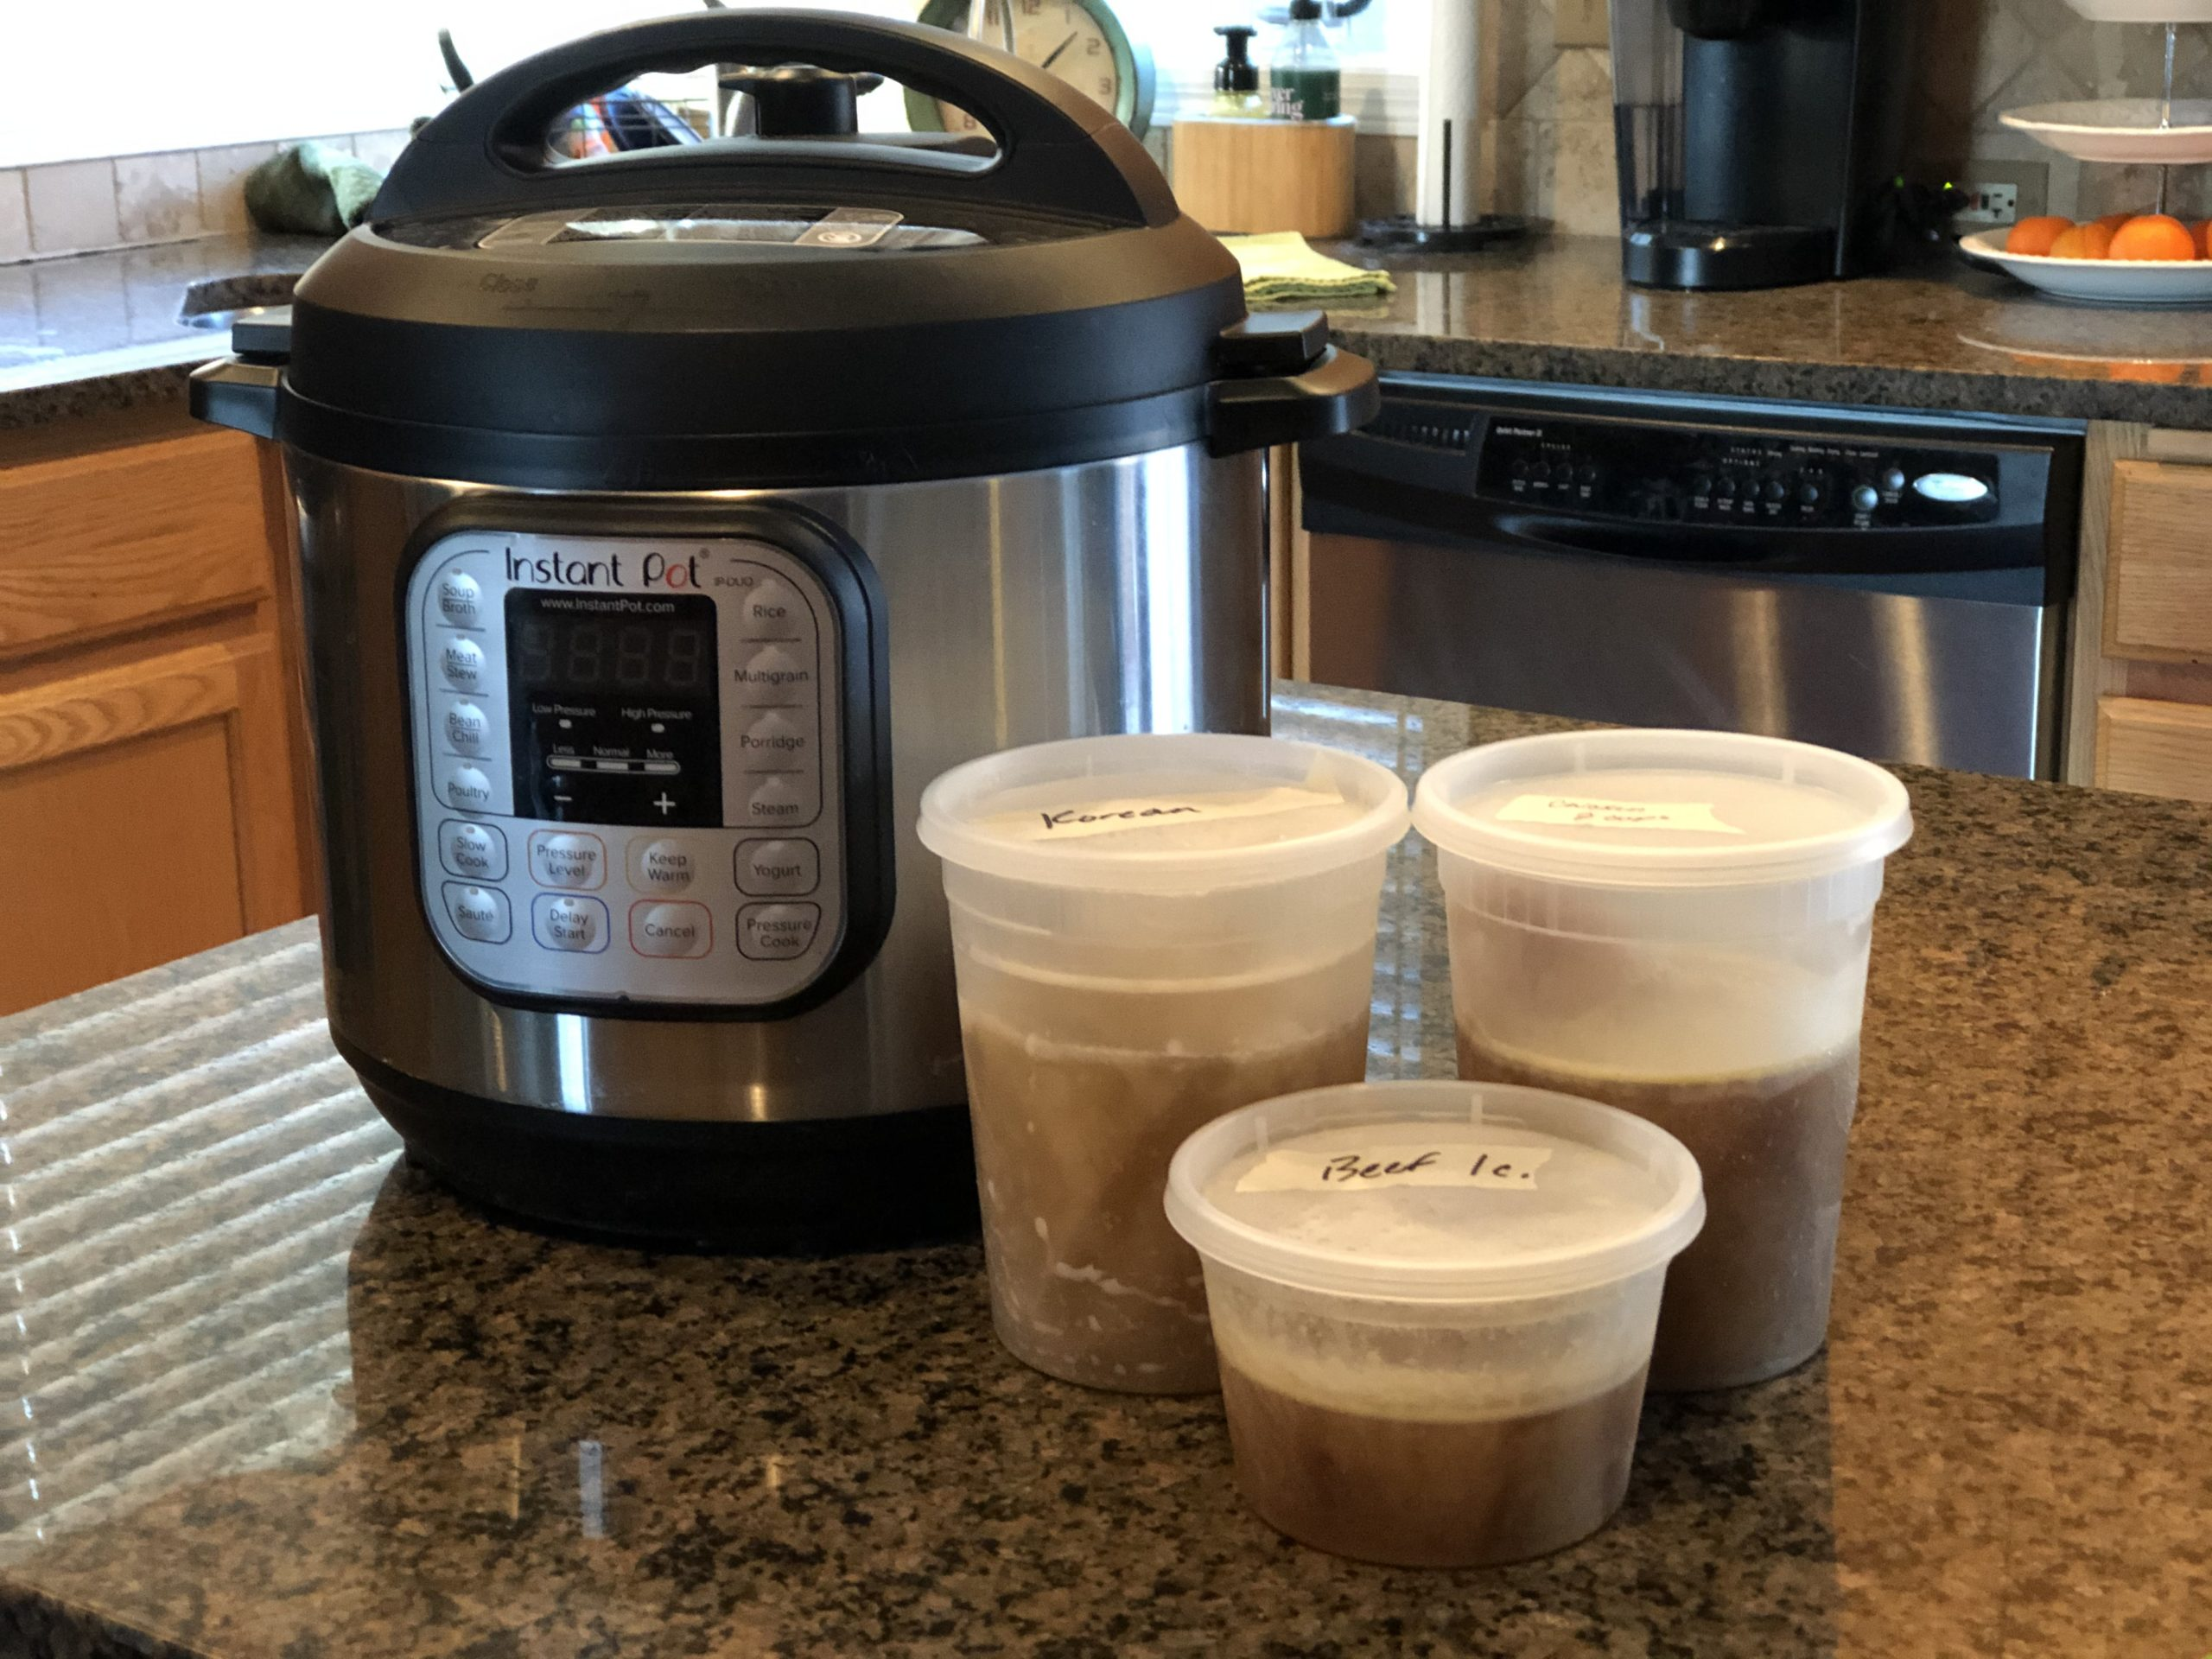 Make stock in the Instant Pot - you will not want to go back to store-bought versions.